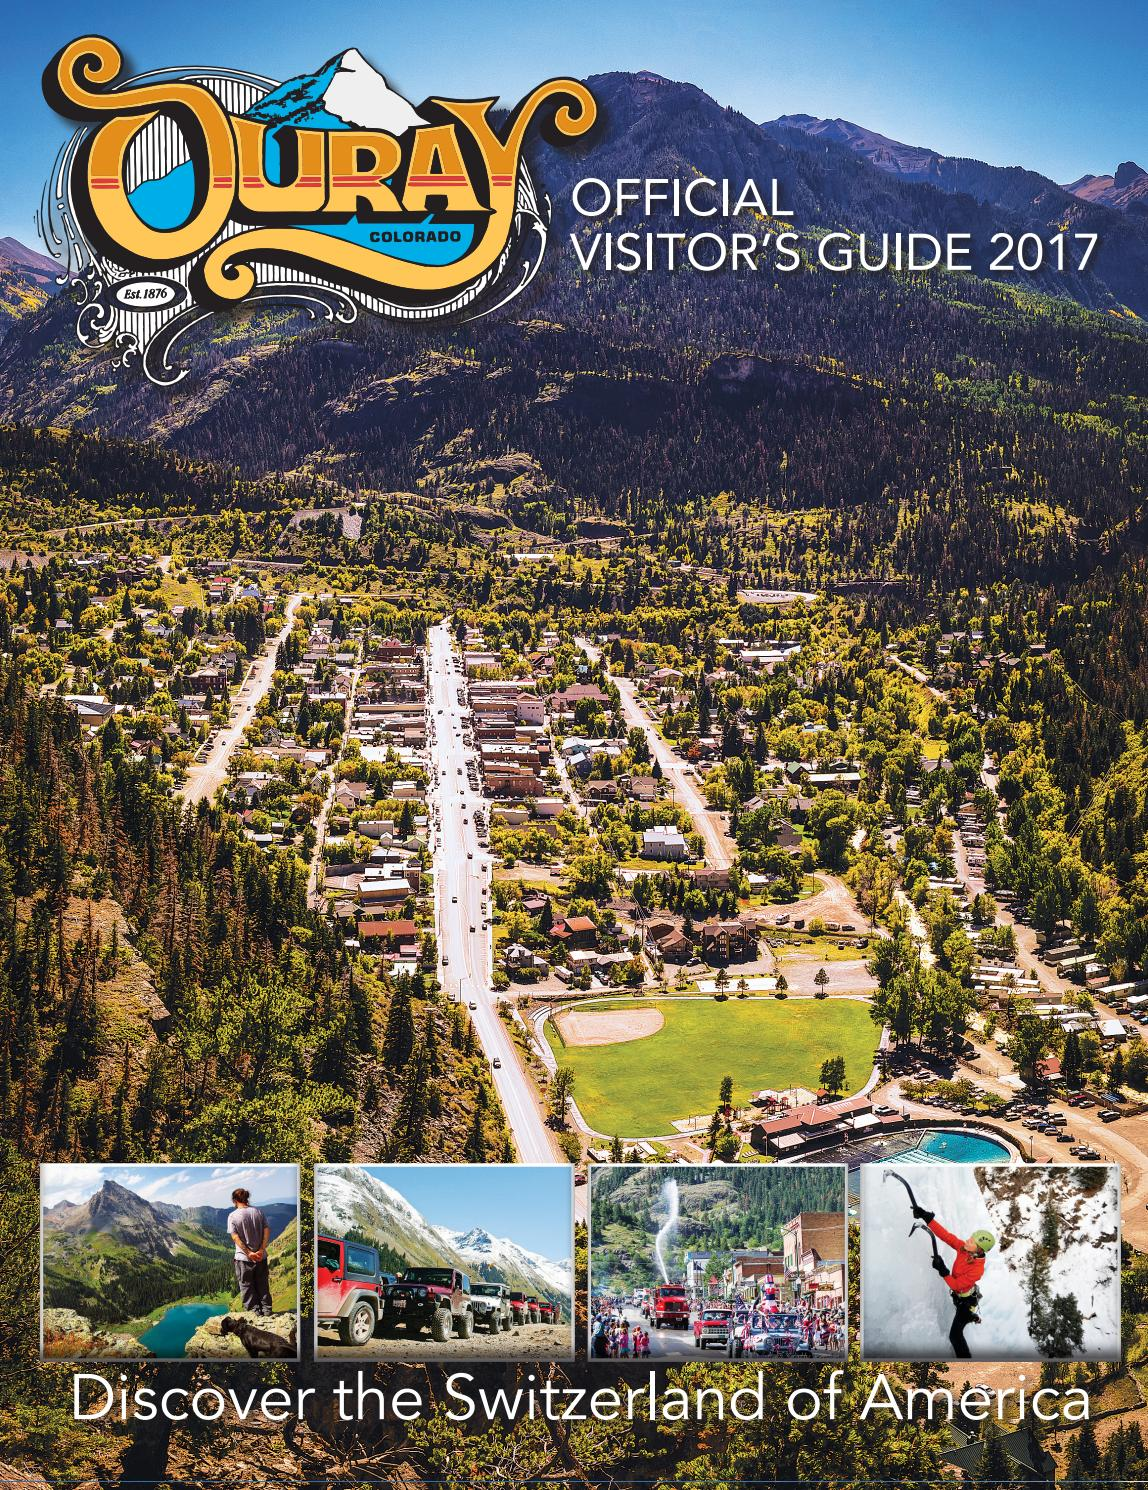 ouray official visitors guide 2017 by ballantine communications issuu ouray official visitors guide 2017 by